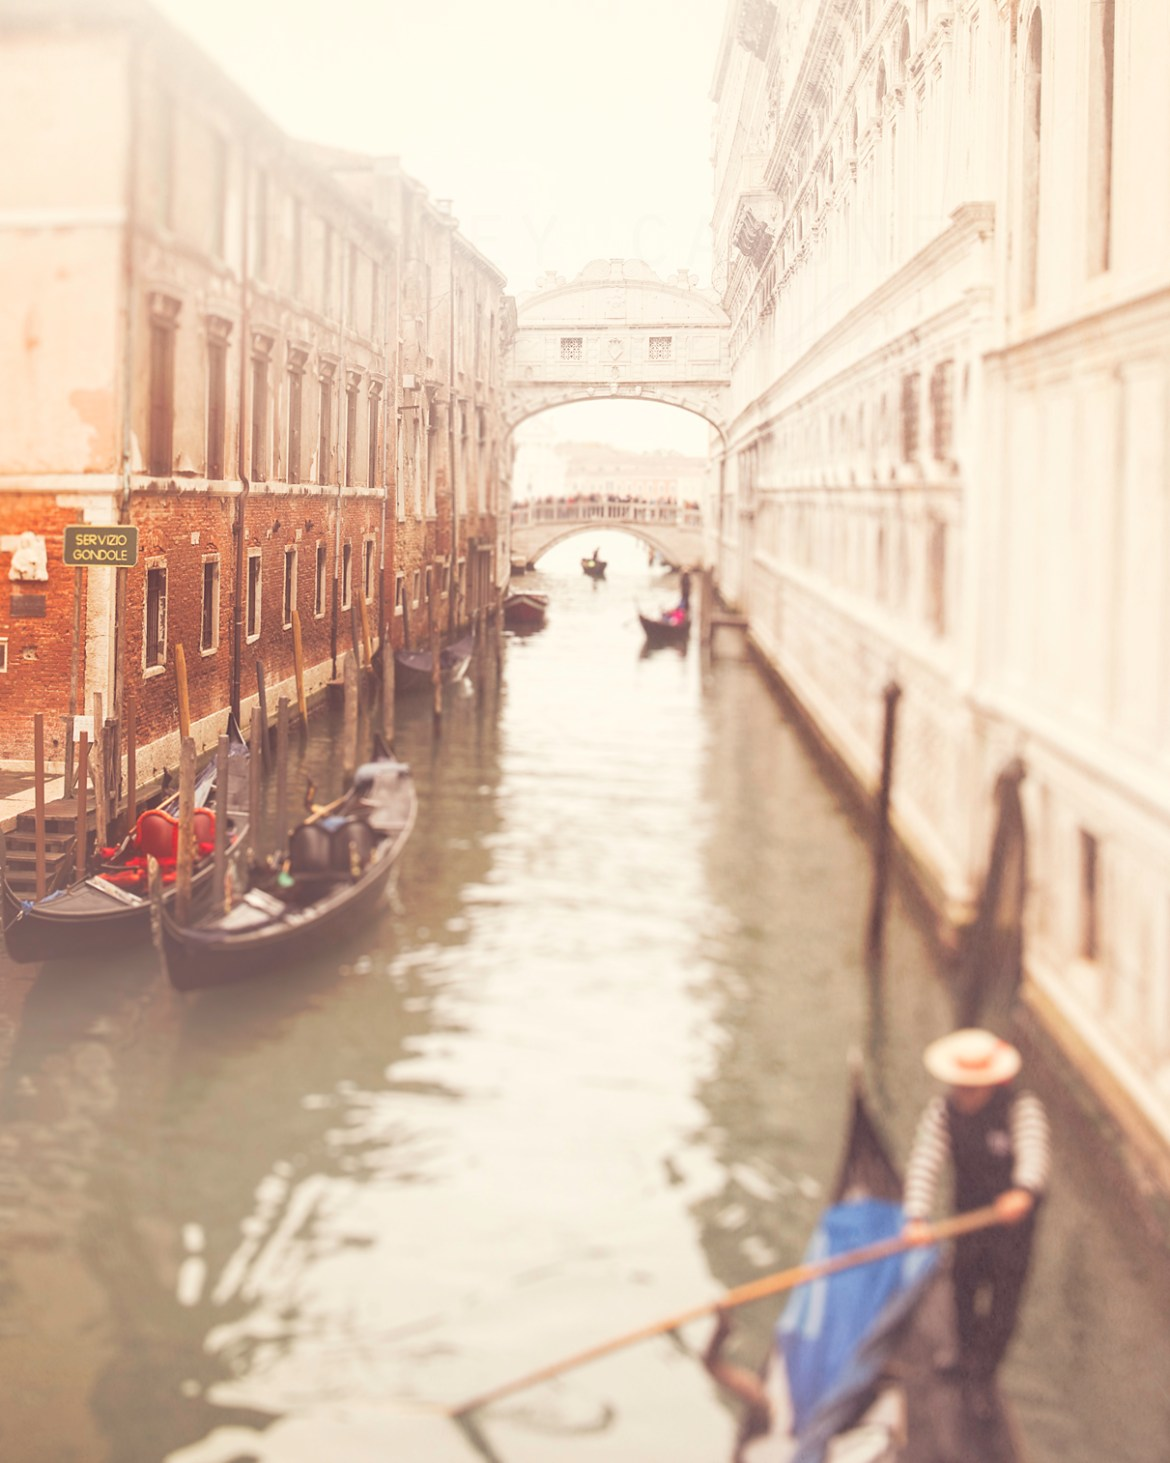 Abstract photograph of a gondolier along the Bridge of Sighs